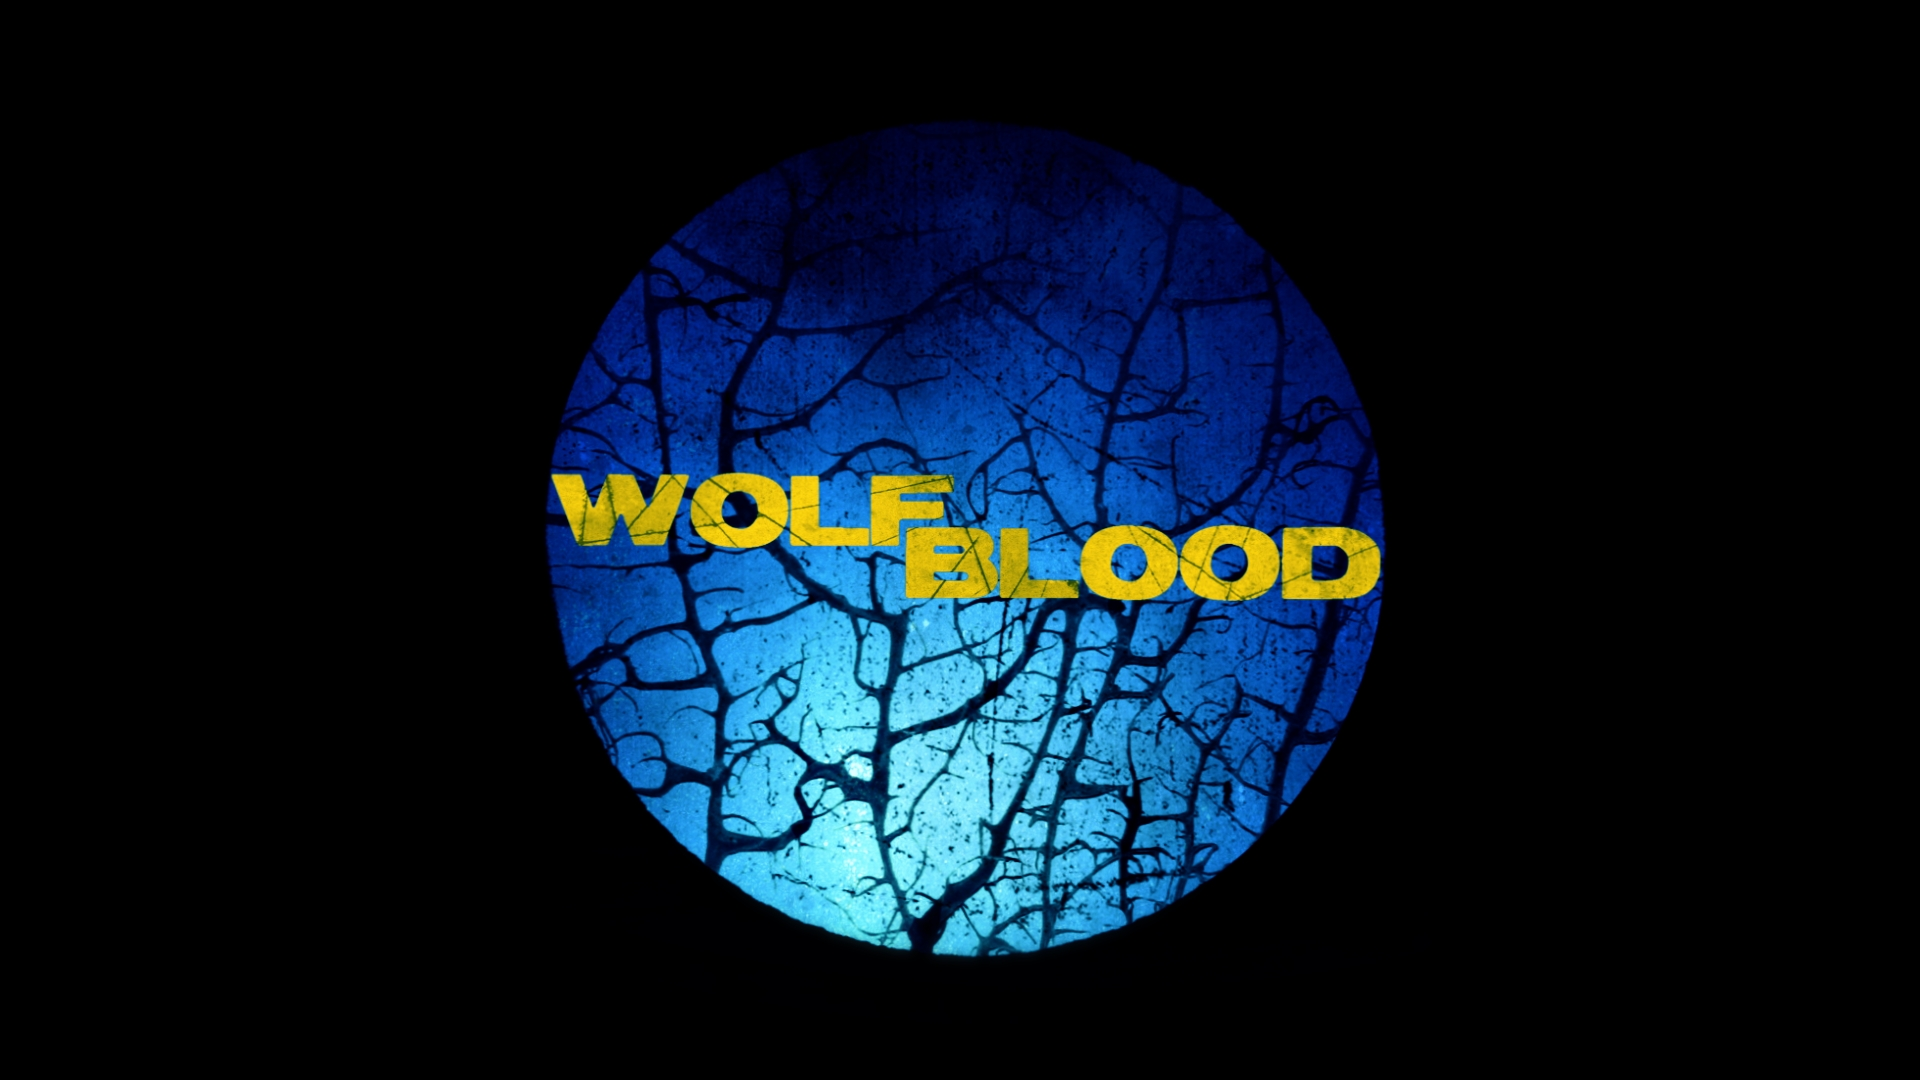 Wolfblood log